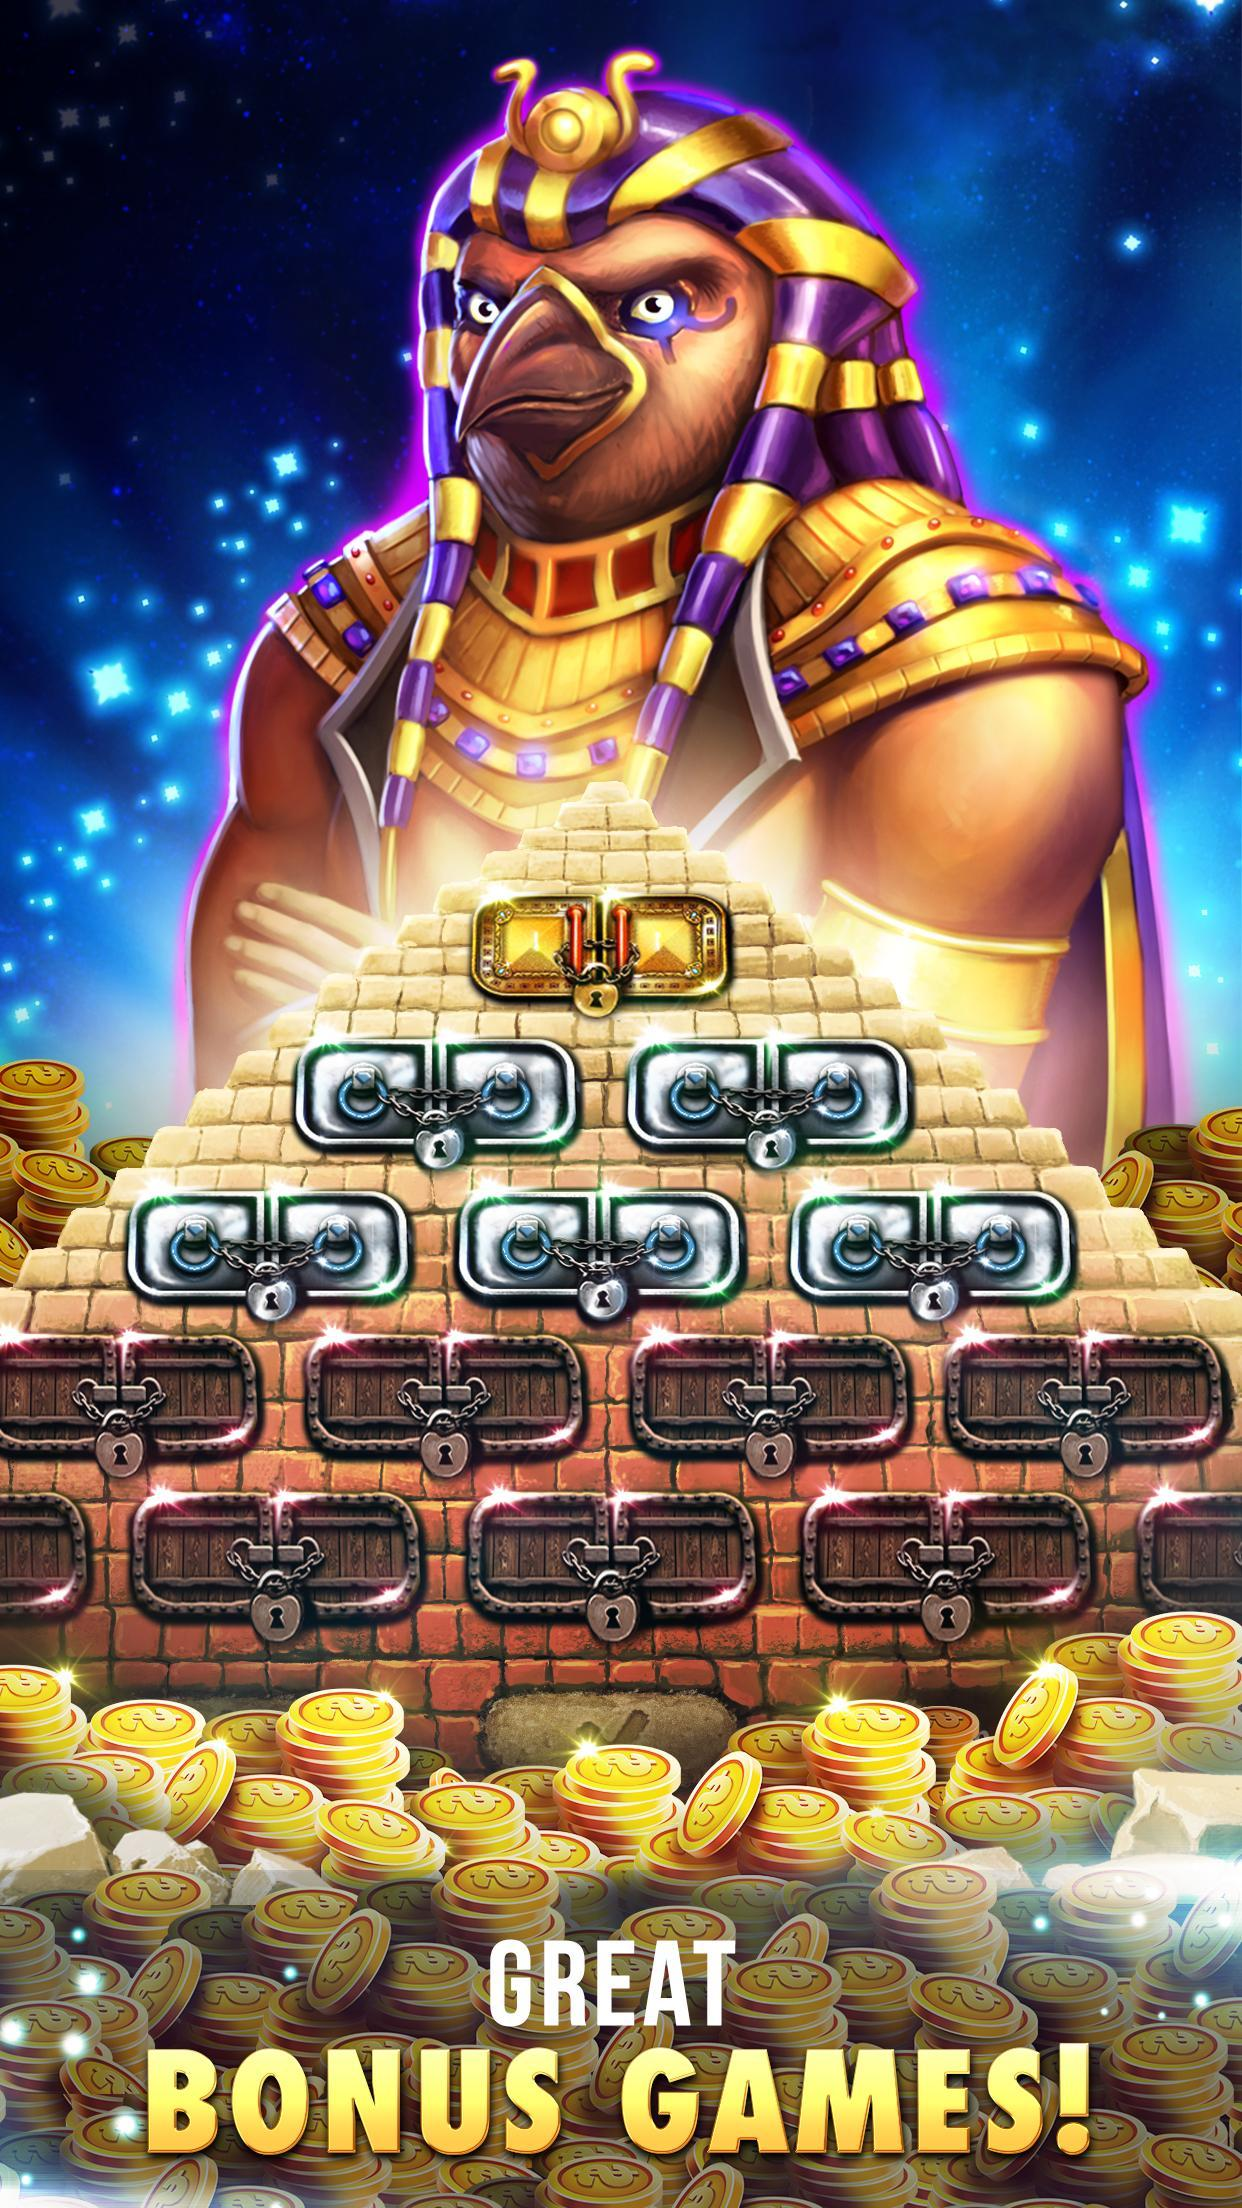 Slots™ - Pharaoh's adventure 2.8.3602 Screenshot 9